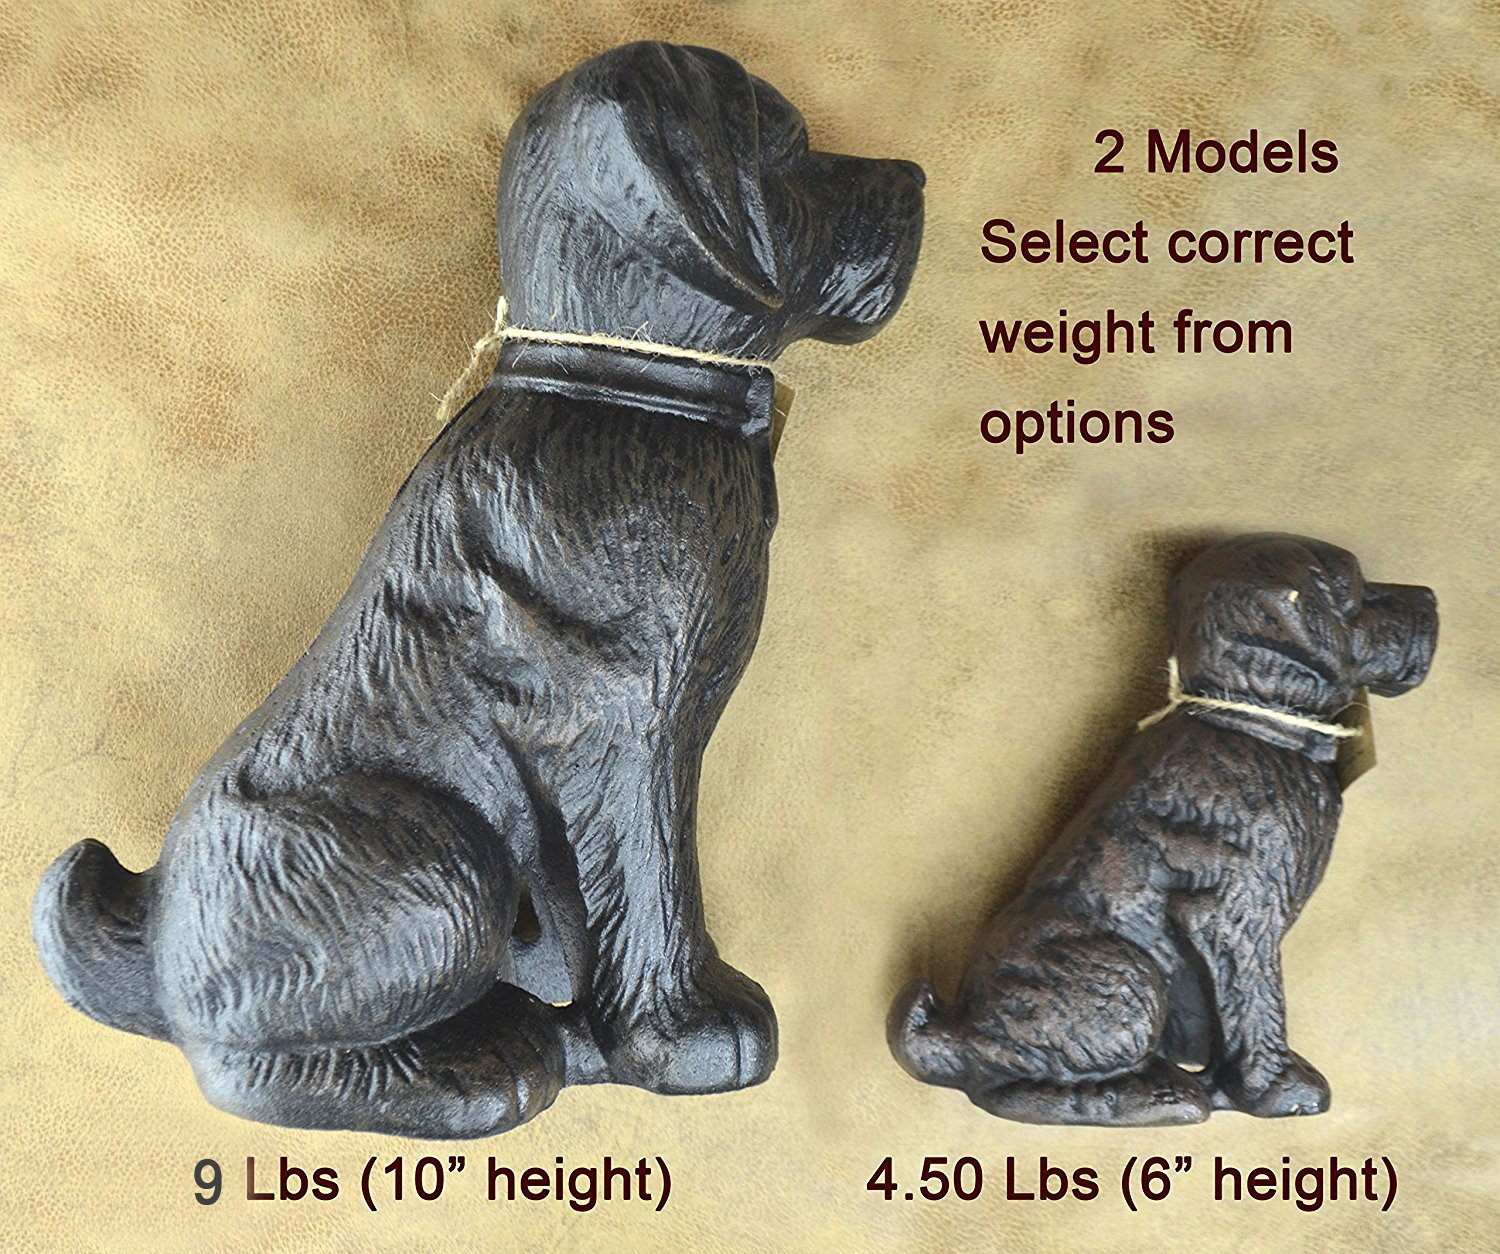 LuLu Decor, 100% Cast Iron Dog Door Stopper, Doorstop, Sculpture, Dog Statue, 6'' Height, Weighs 4.50 lb, Antique Brown (Brown 4.50 lb) by Lulu Decor (Image #3)